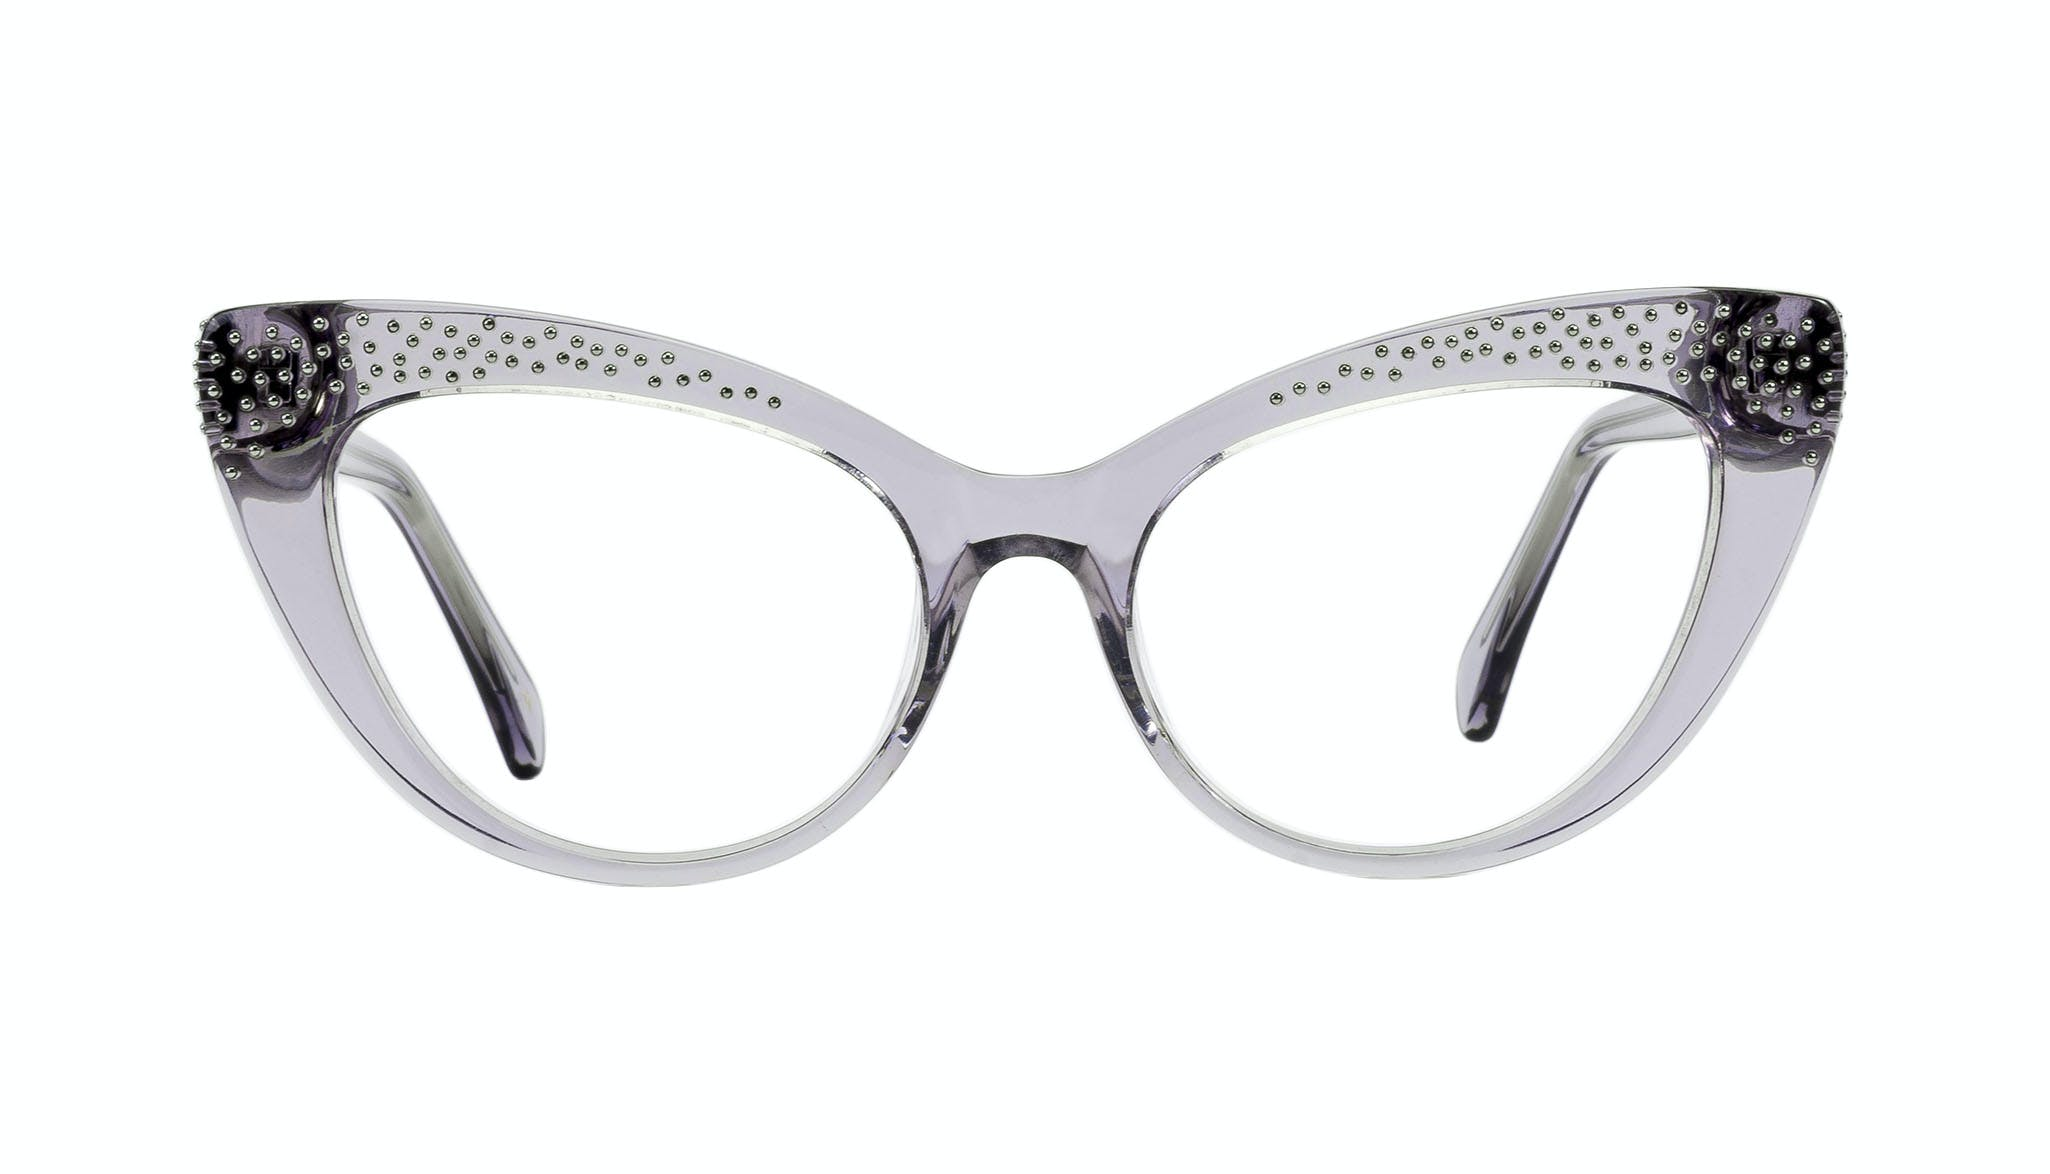 Affordable Fashion Glasses Cat Eye Daring Cateye Eyeglasses Women Keiko Moe May